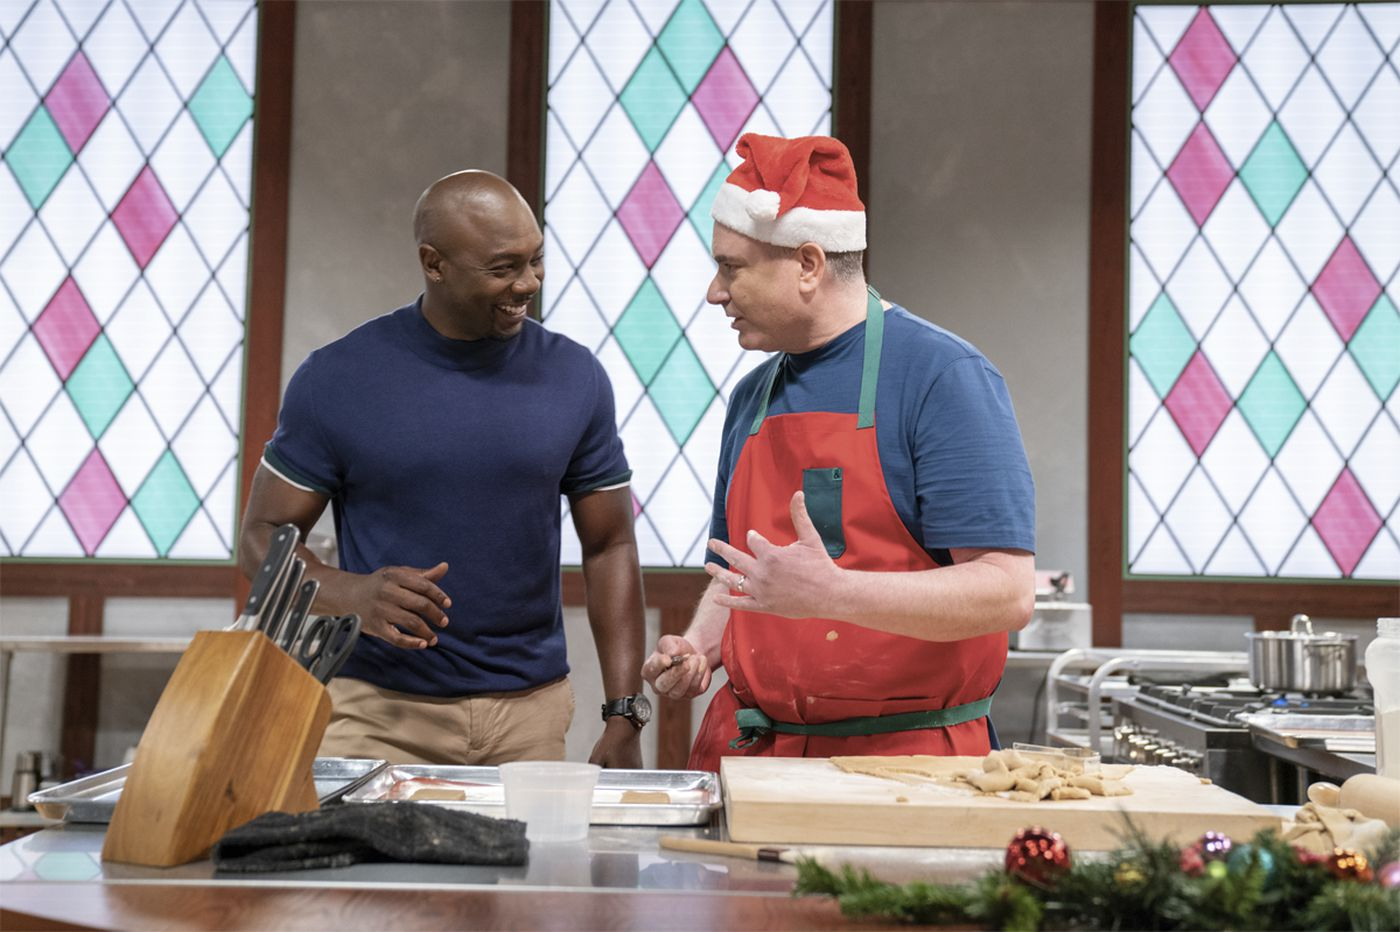 Temple pastry chef 'Baker Dave' to compete for $10,000 prize on Food Network's 'Christmas Cookie Challenge'